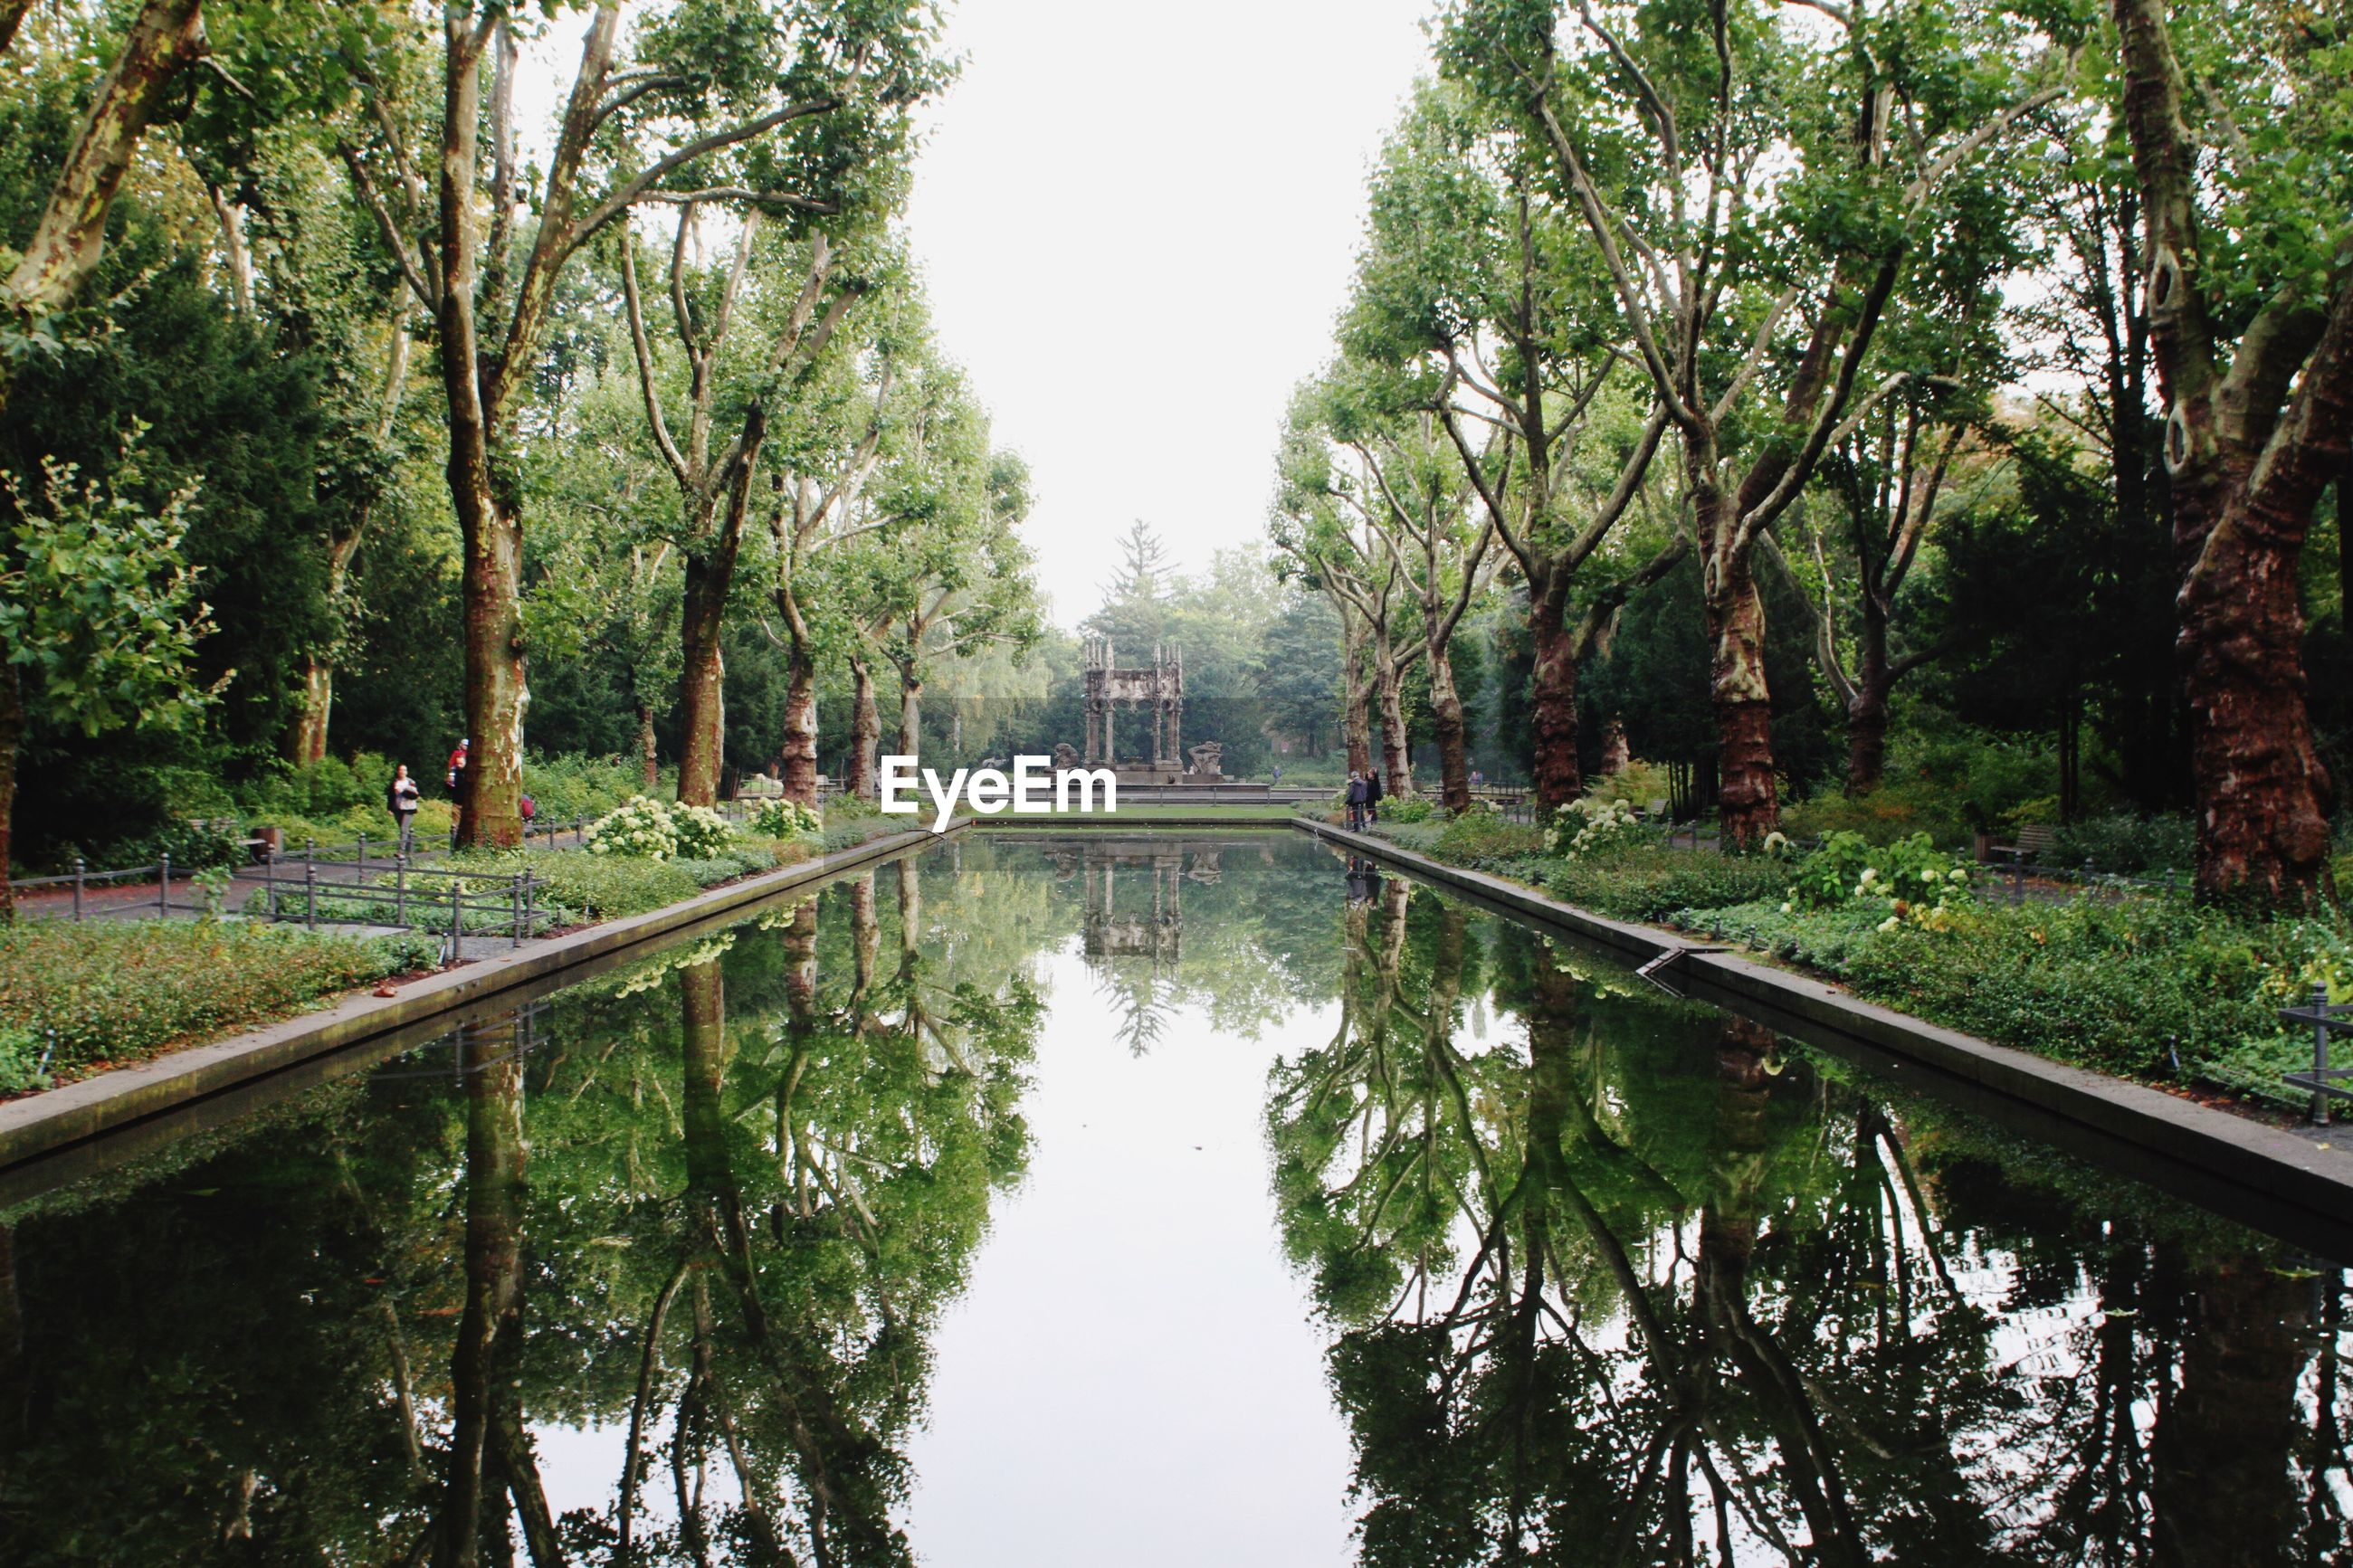 REFLECTION OF TREES ON WATER IN PARK